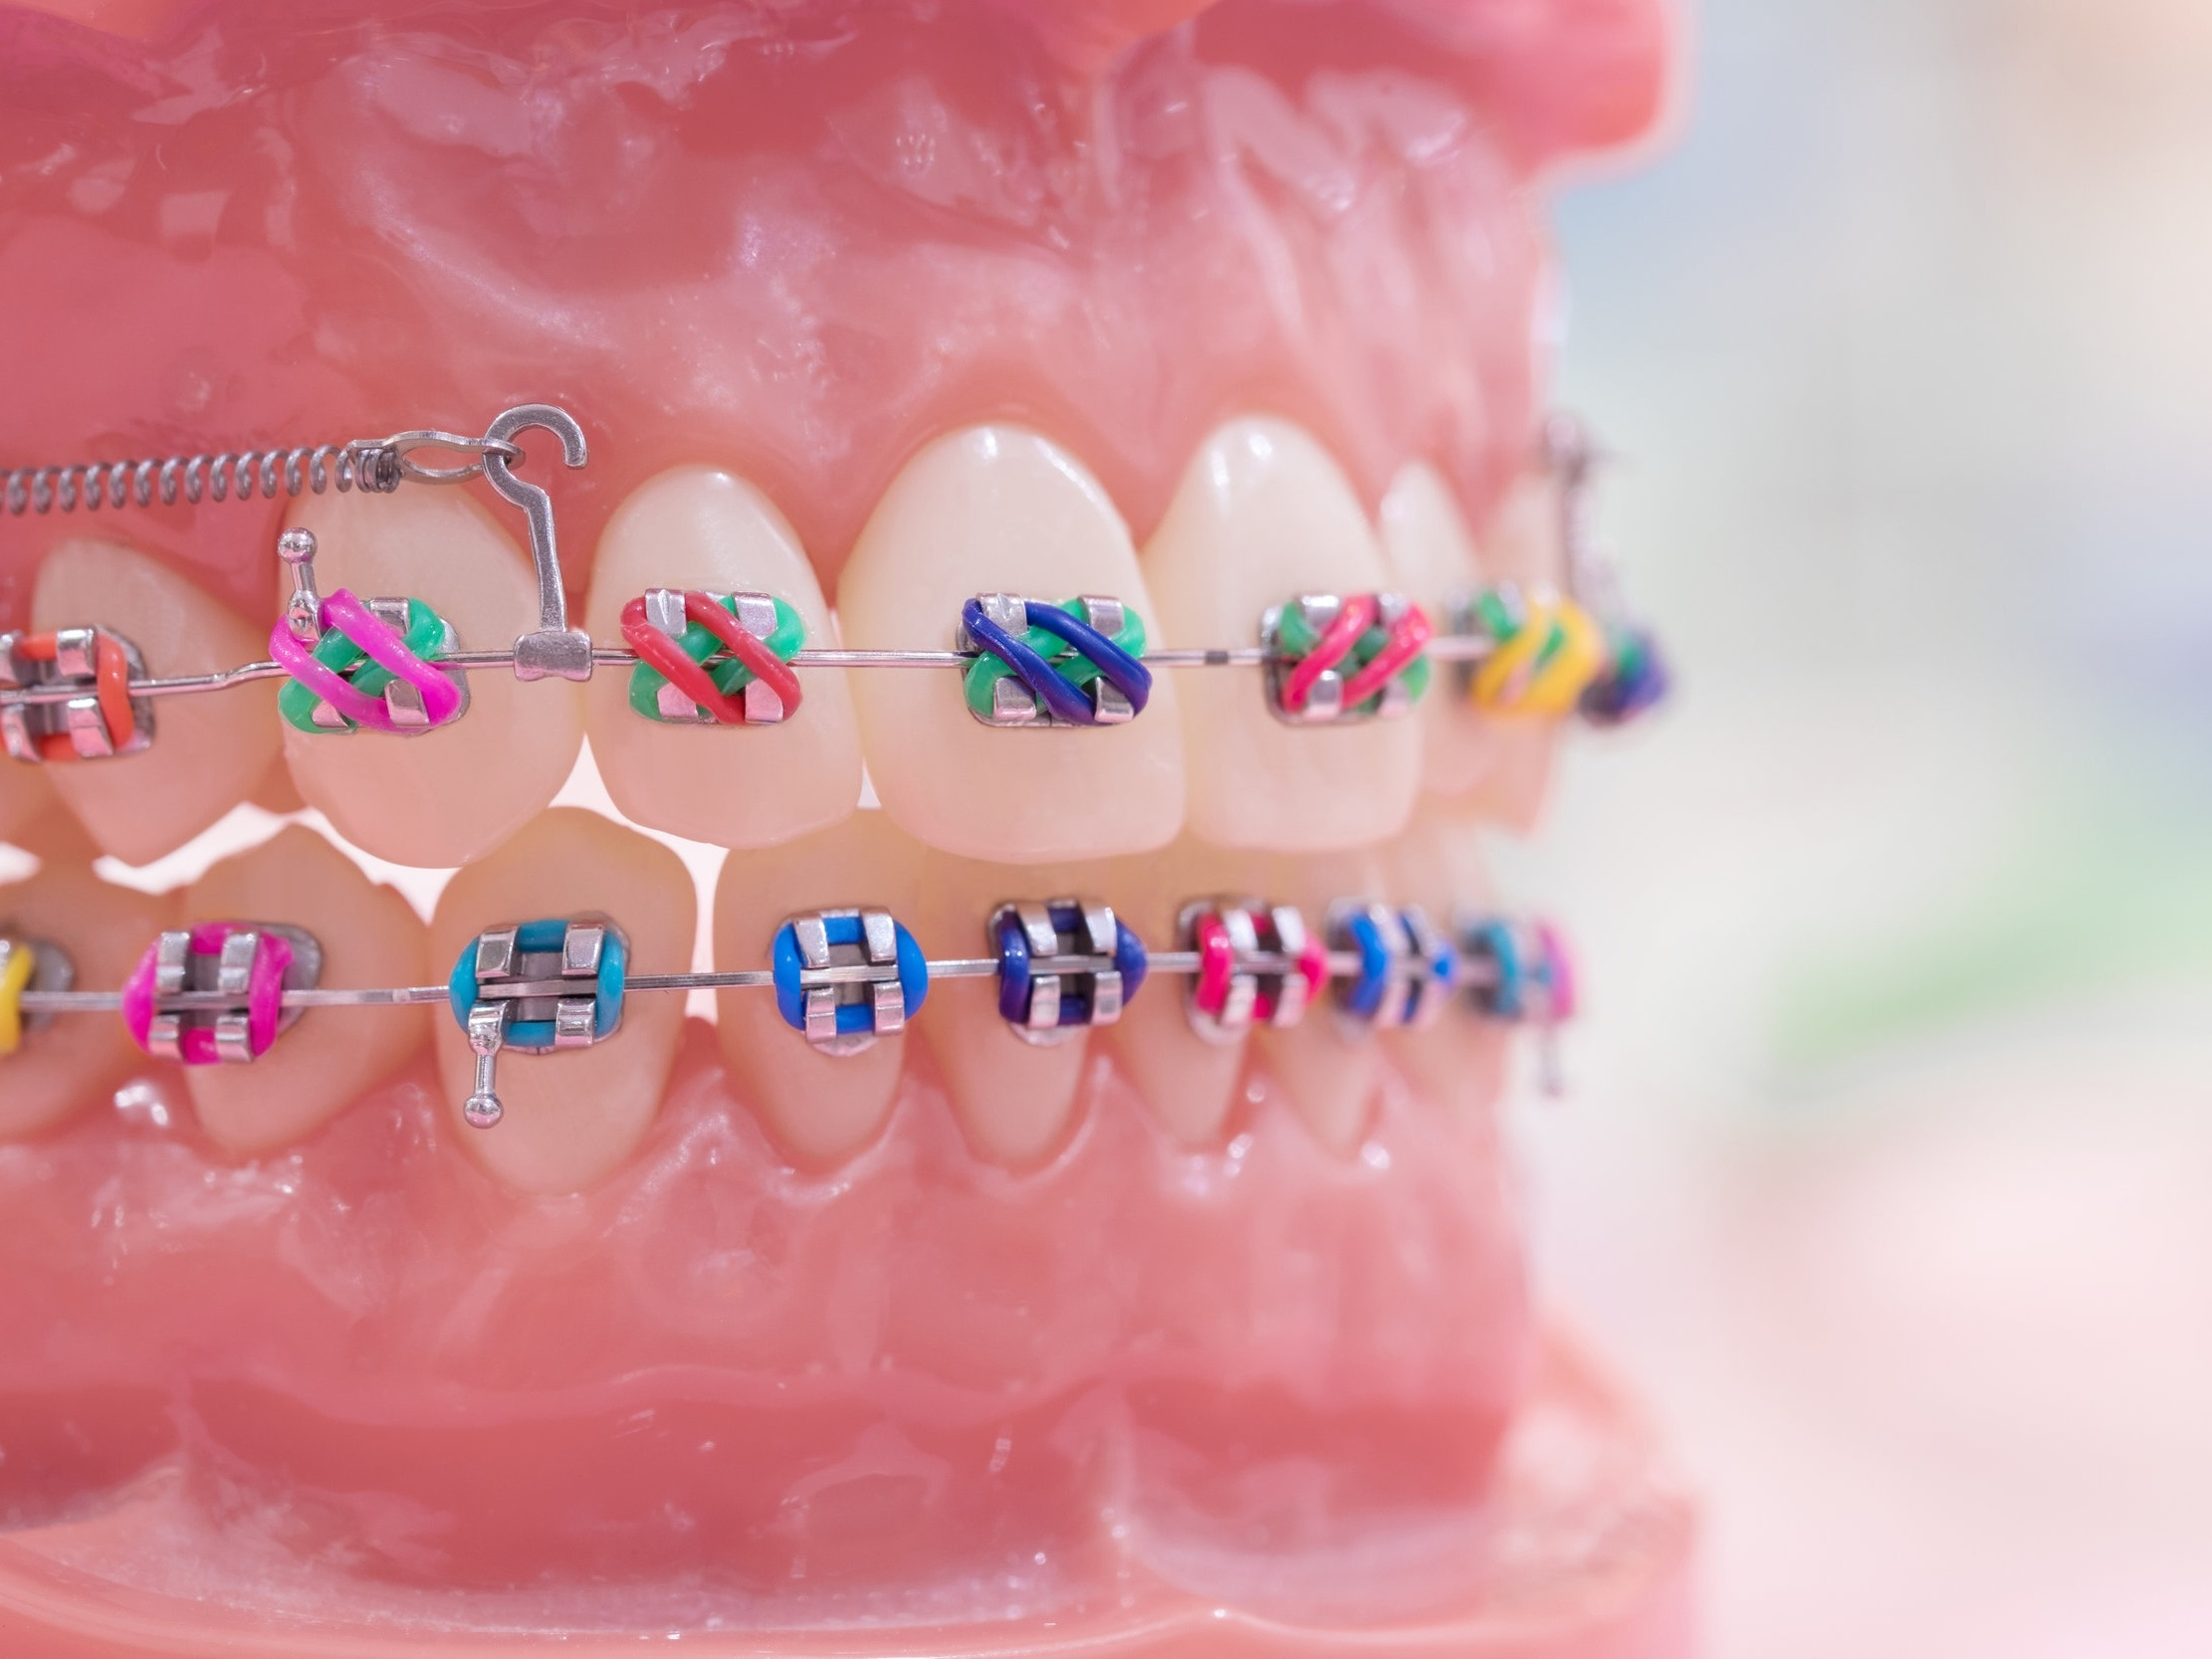 Traditional Metal Braces with color ties